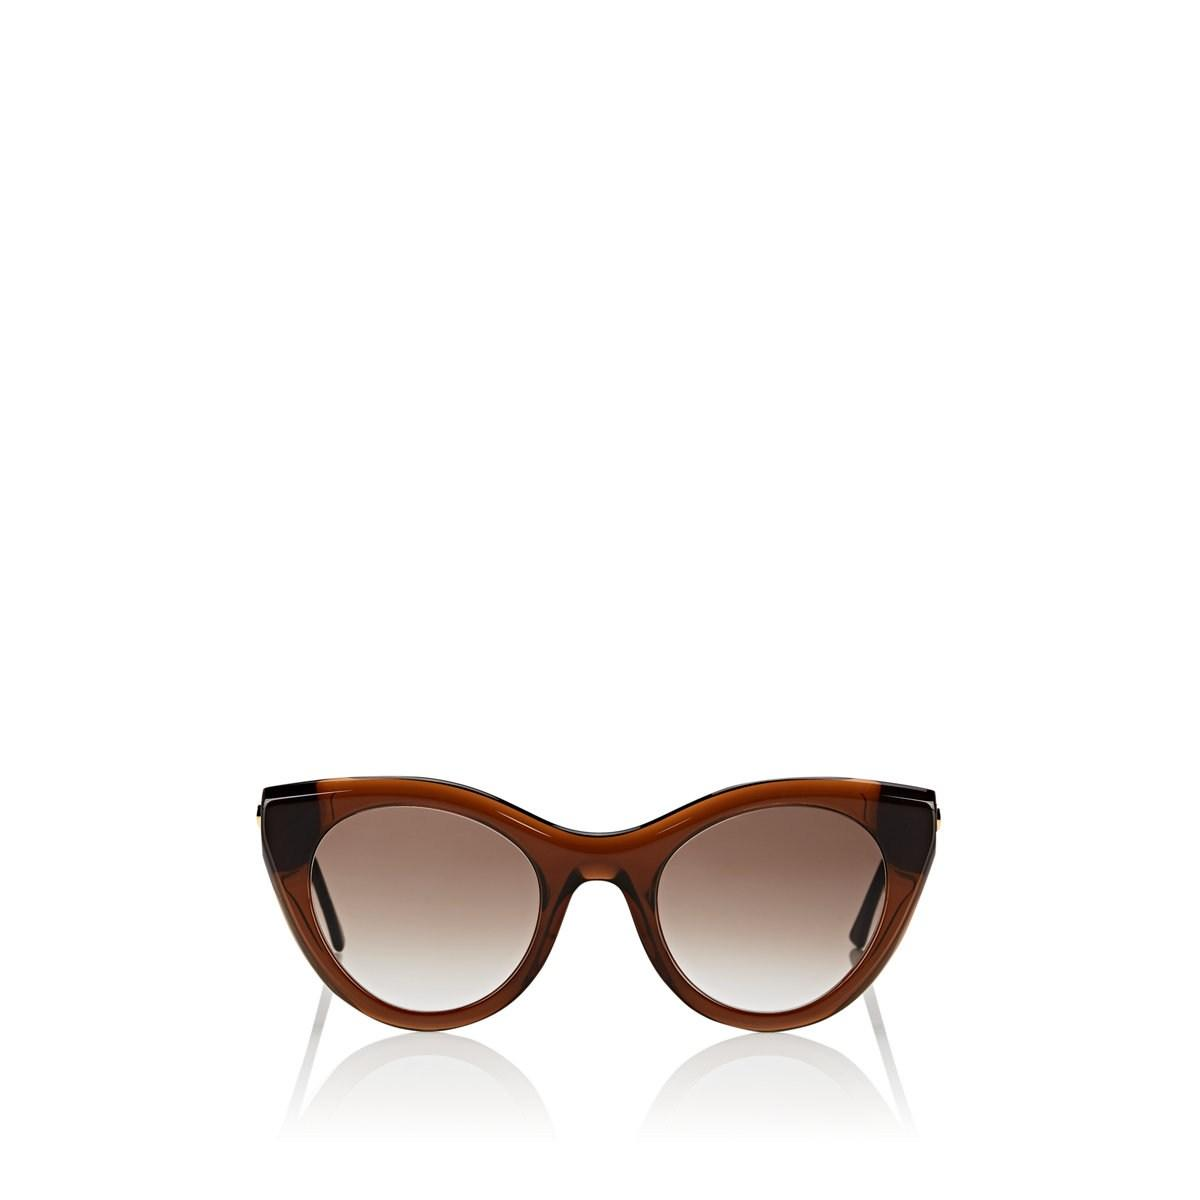 98e7db6a1d Lyst - Thierry Lasry Perky Sunglasses in Brown